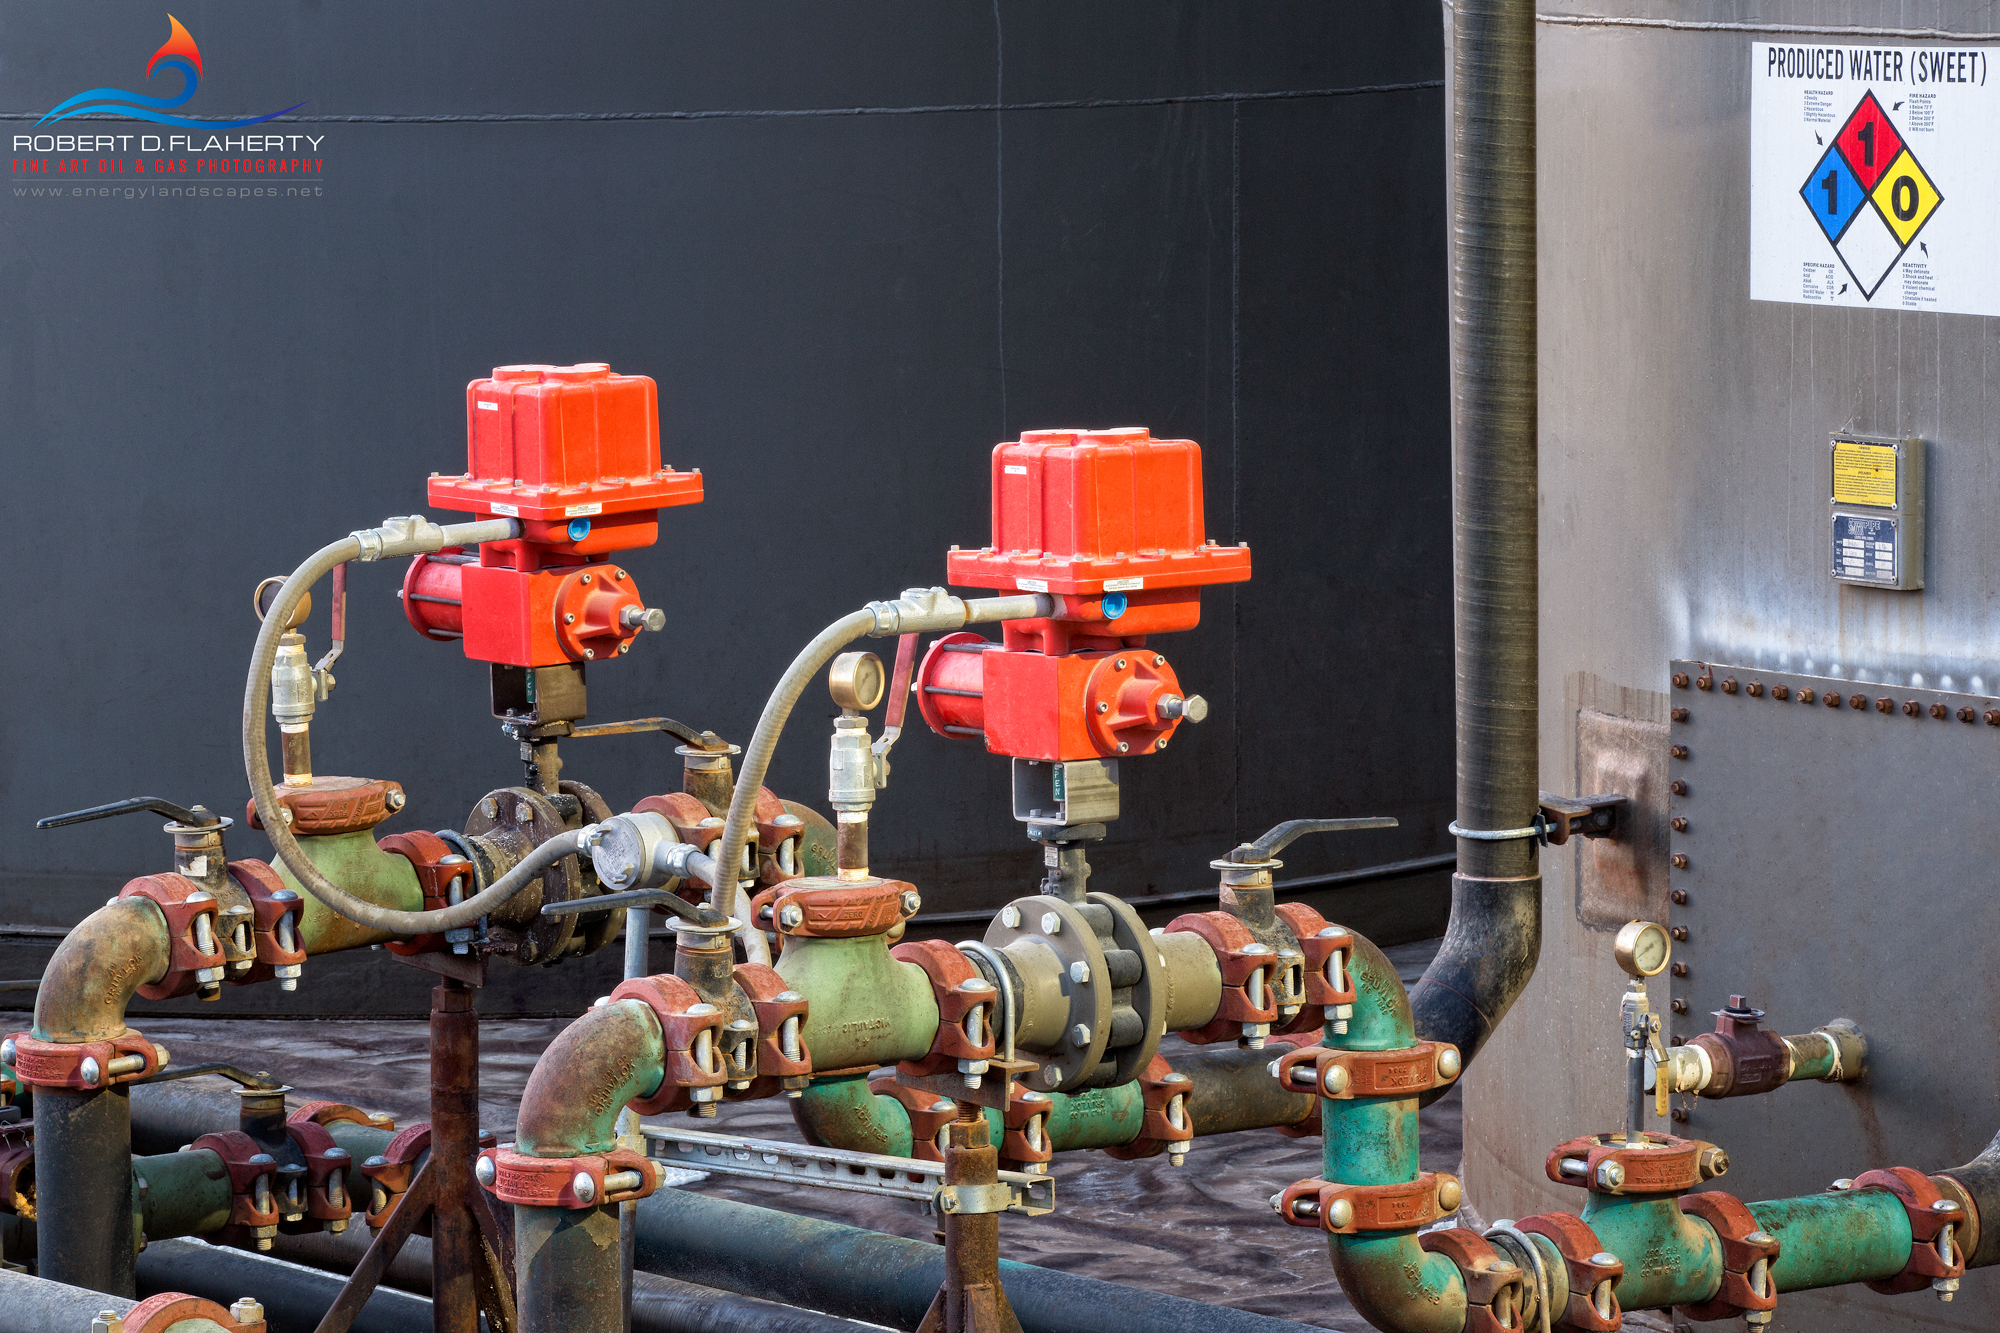 Slam Valves At Blackjack Fed This is an asset detail image featuring slam valves on a produced water storage tank in Western...